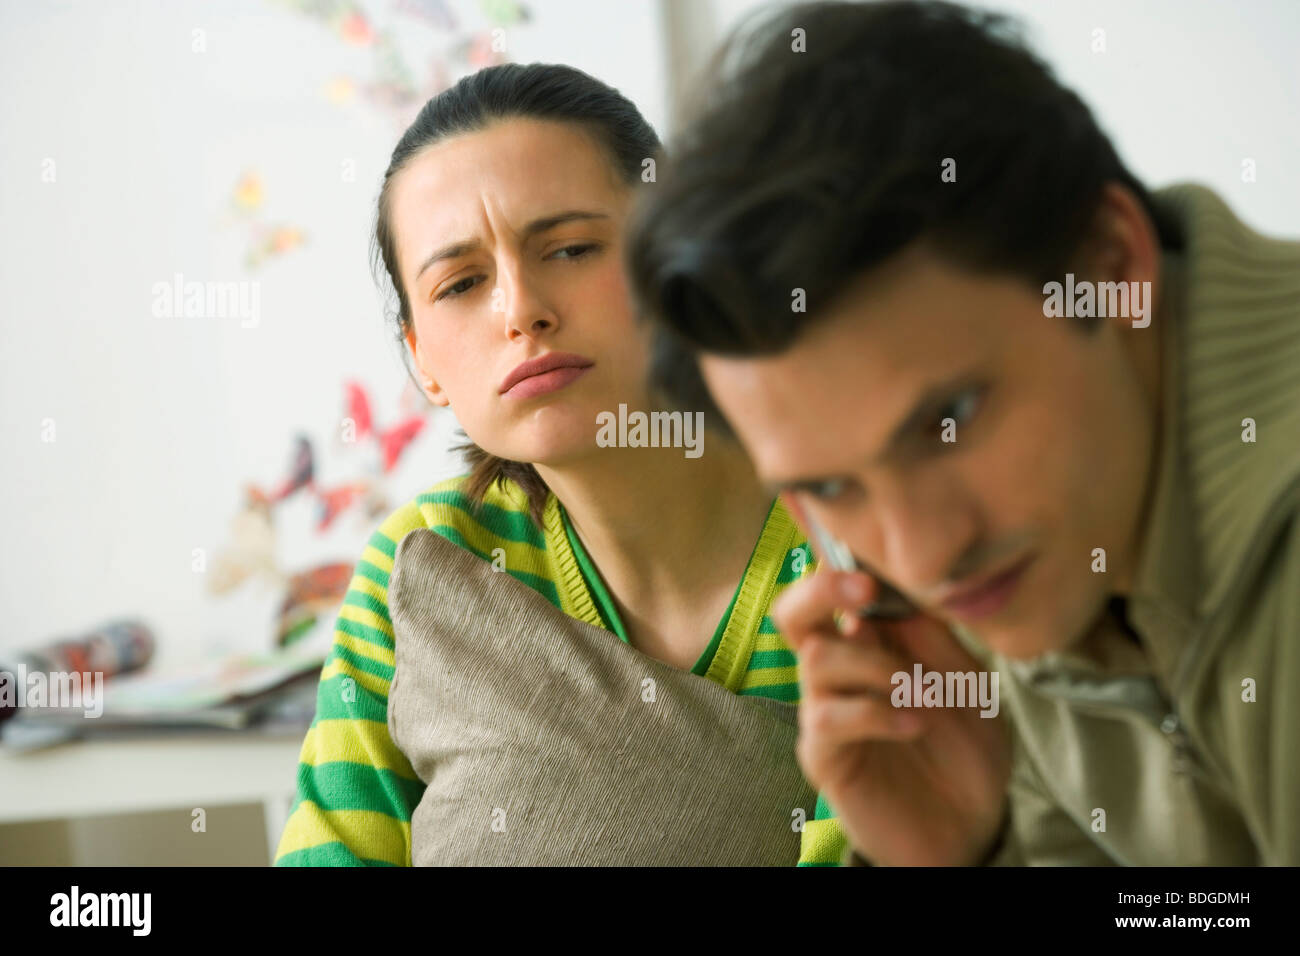 CONFLICT IN A COUPLE - Stock Image